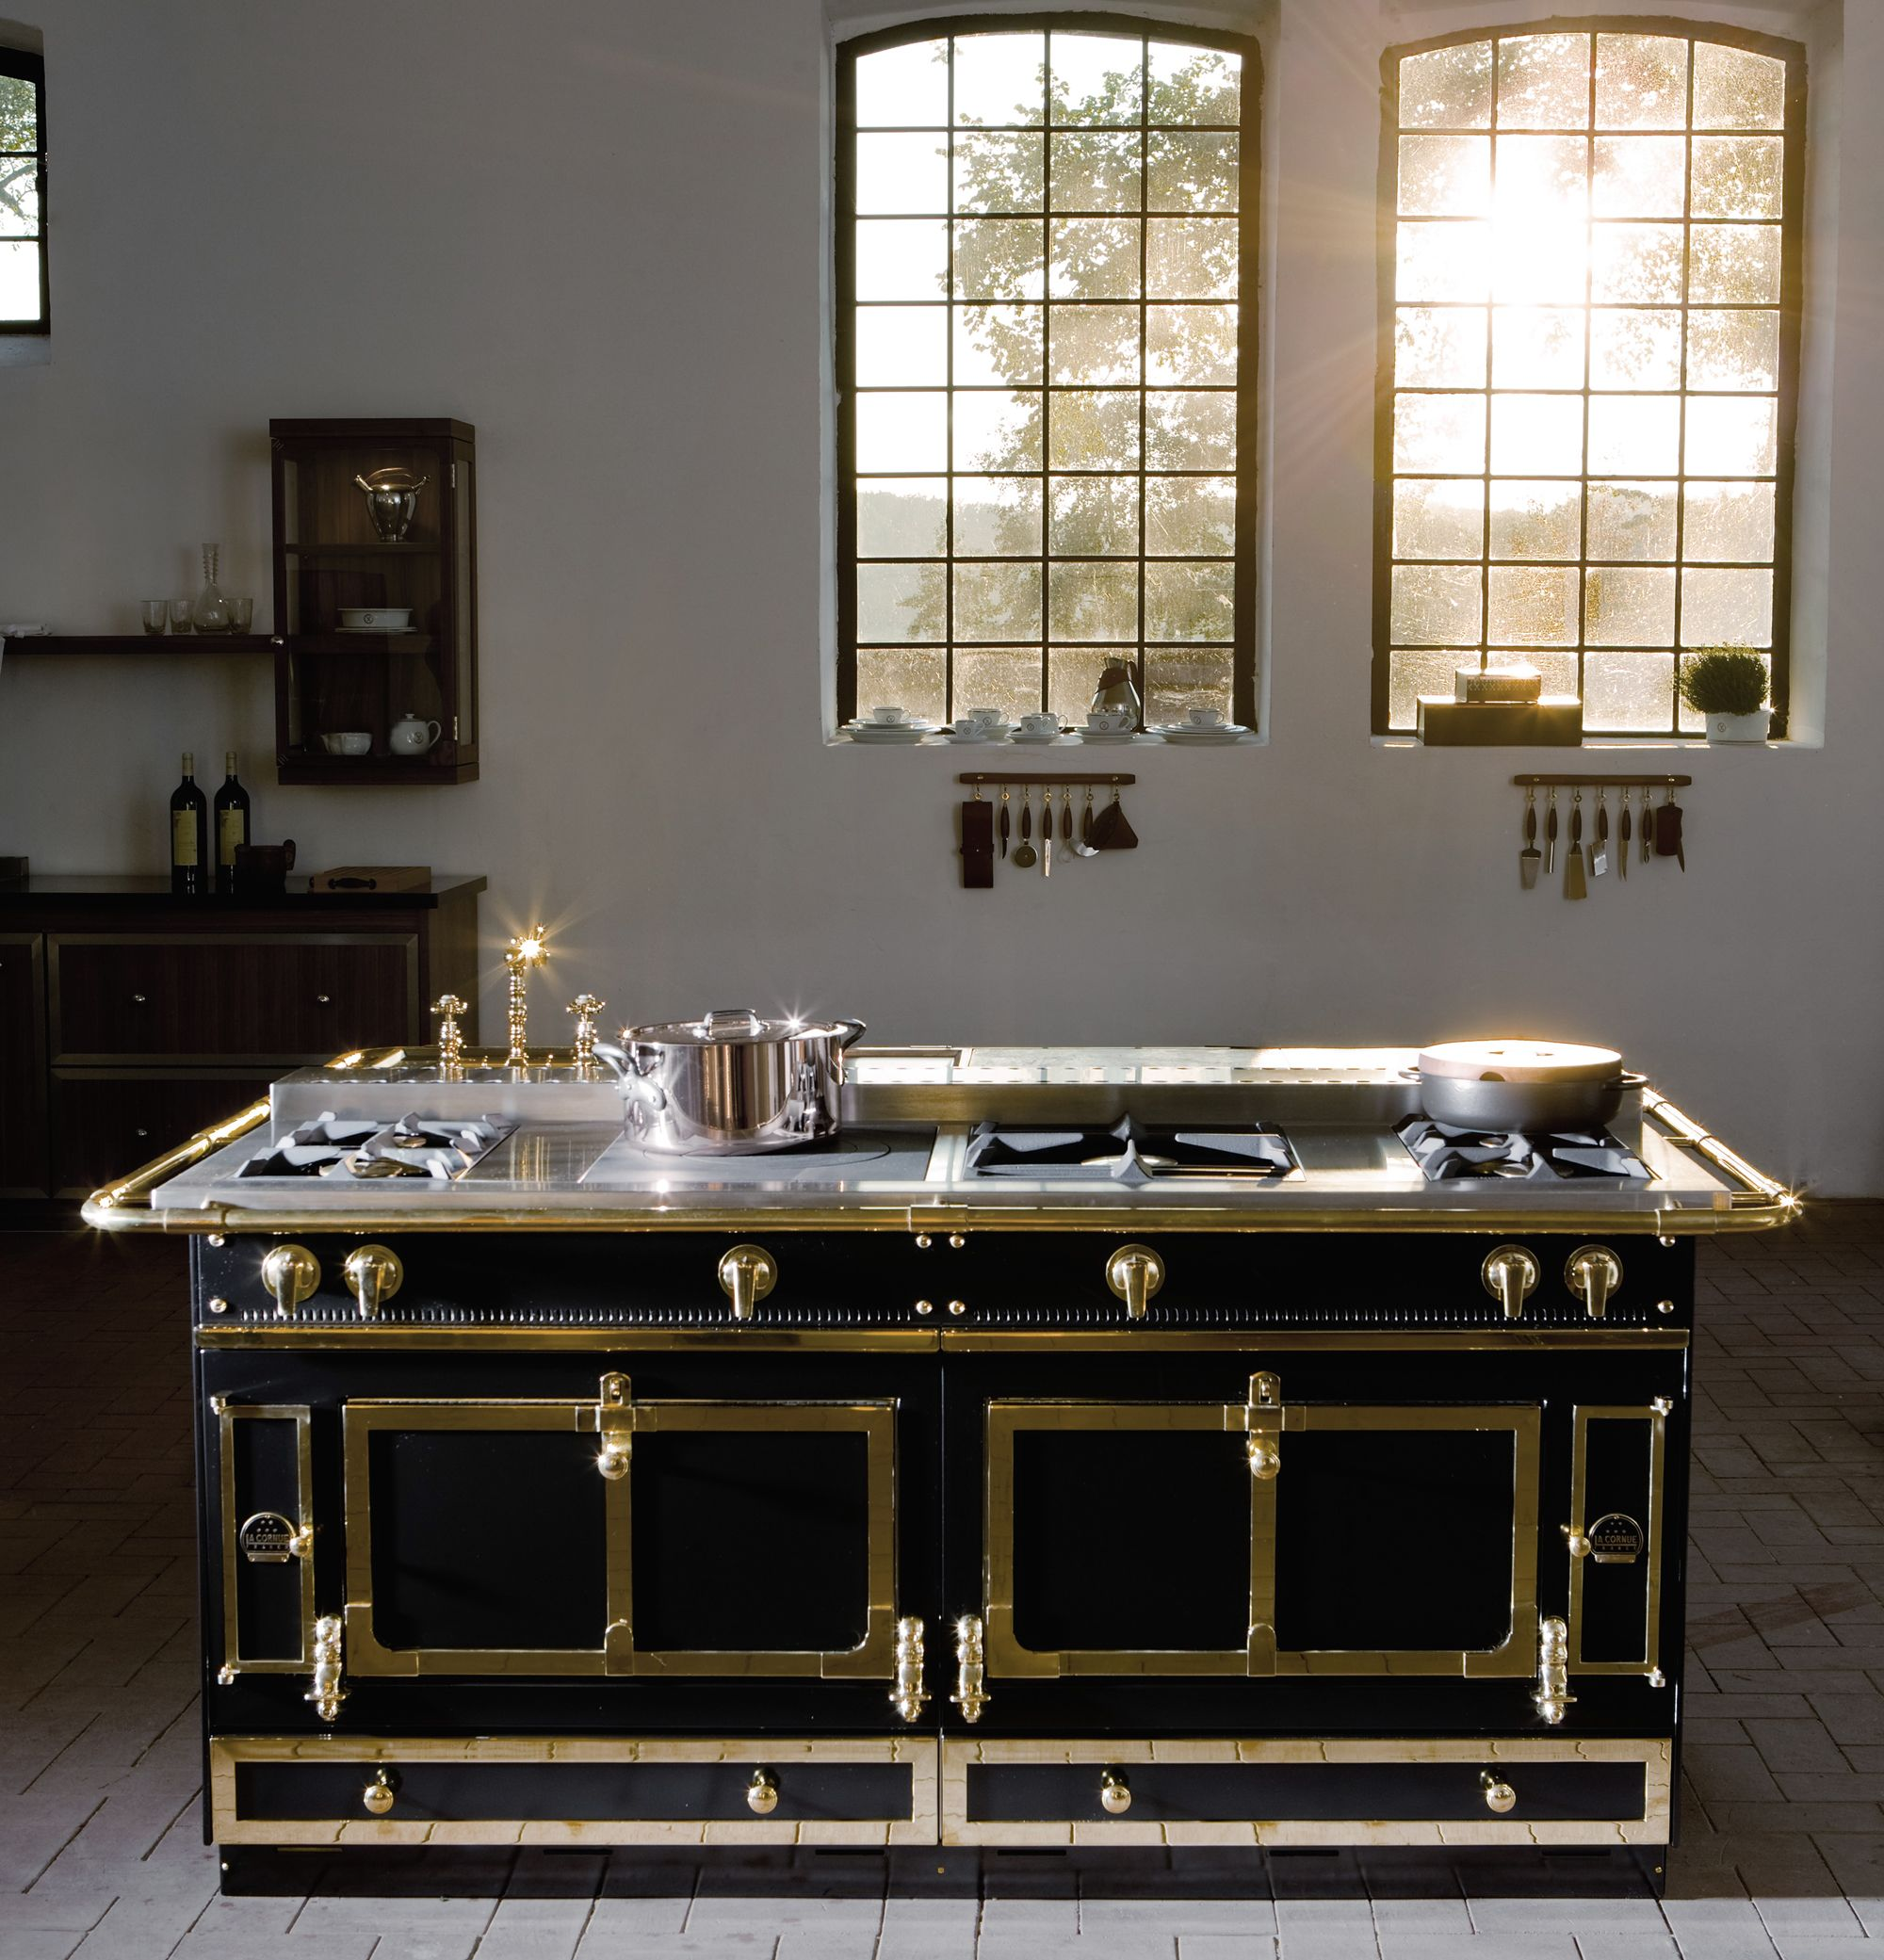 la cornue 1908 prix 1908 cooker by la cornue la cornue cornufe ovens chateau range san juan. Black Bedroom Furniture Sets. Home Design Ideas